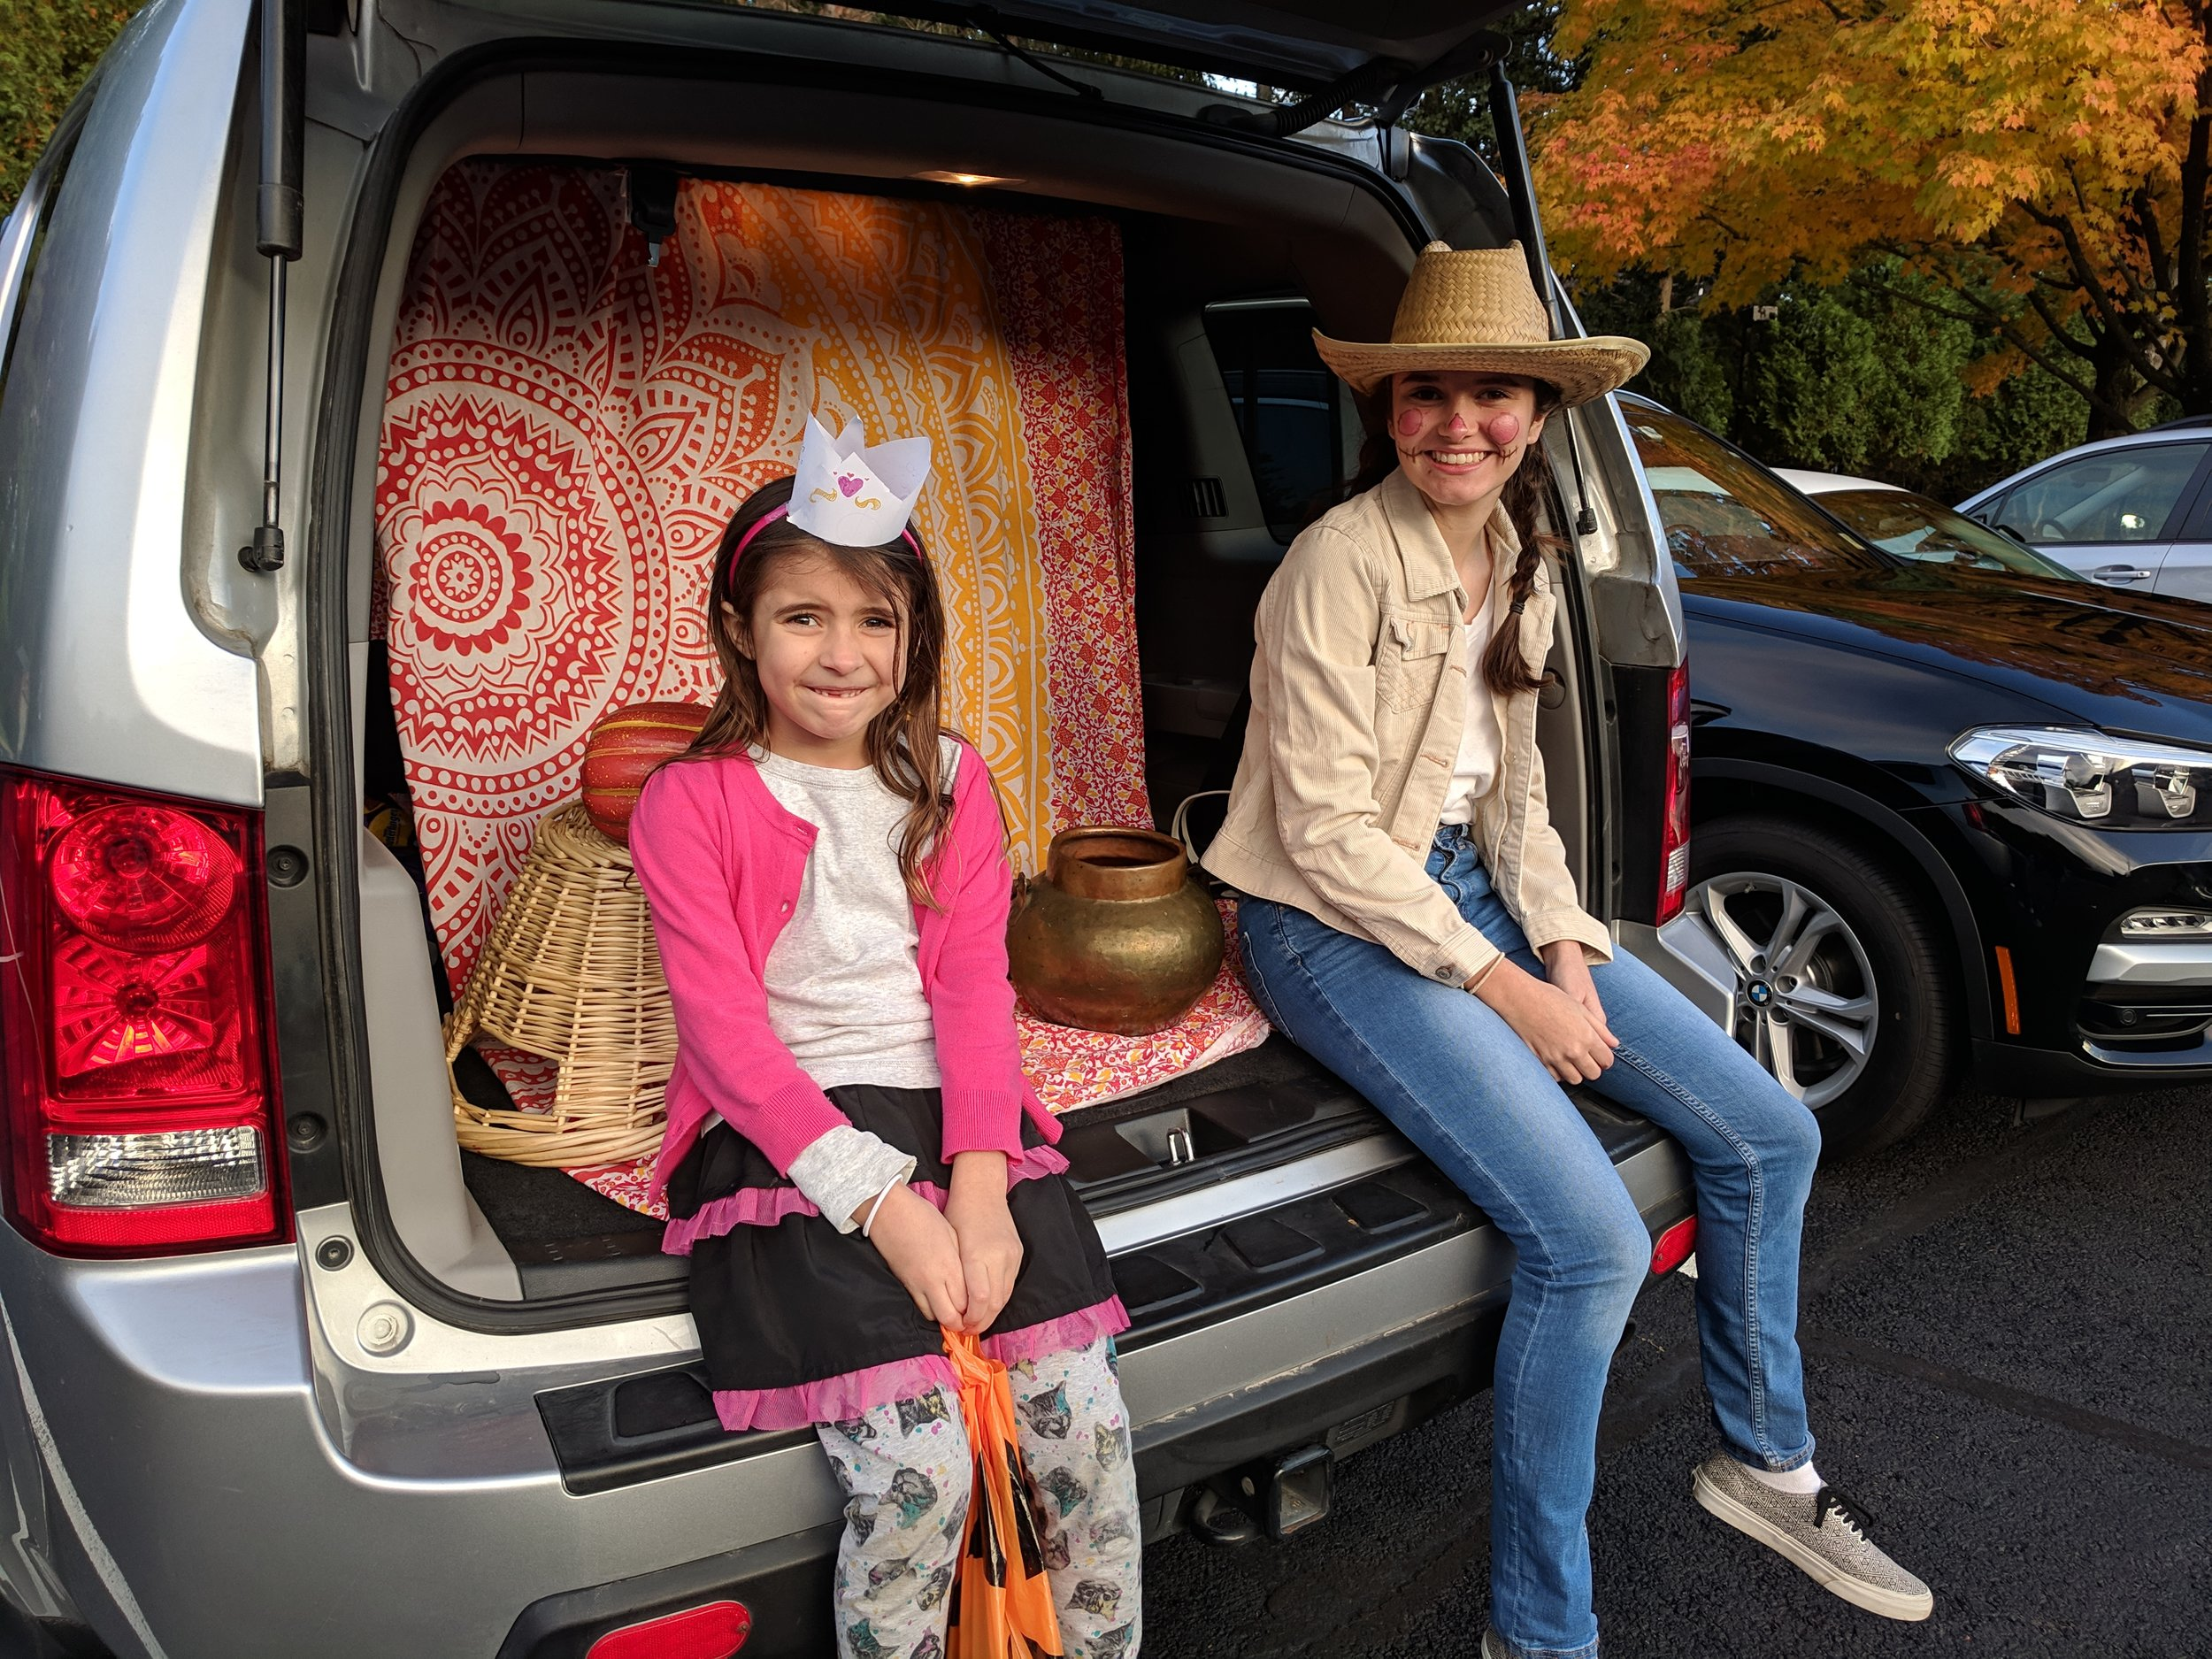 Halloween trunk-or-treat! We are going with the Nebraska/India/Egyptian theme that was all the rage this year. (Reston, Virginia; Oct 2018)